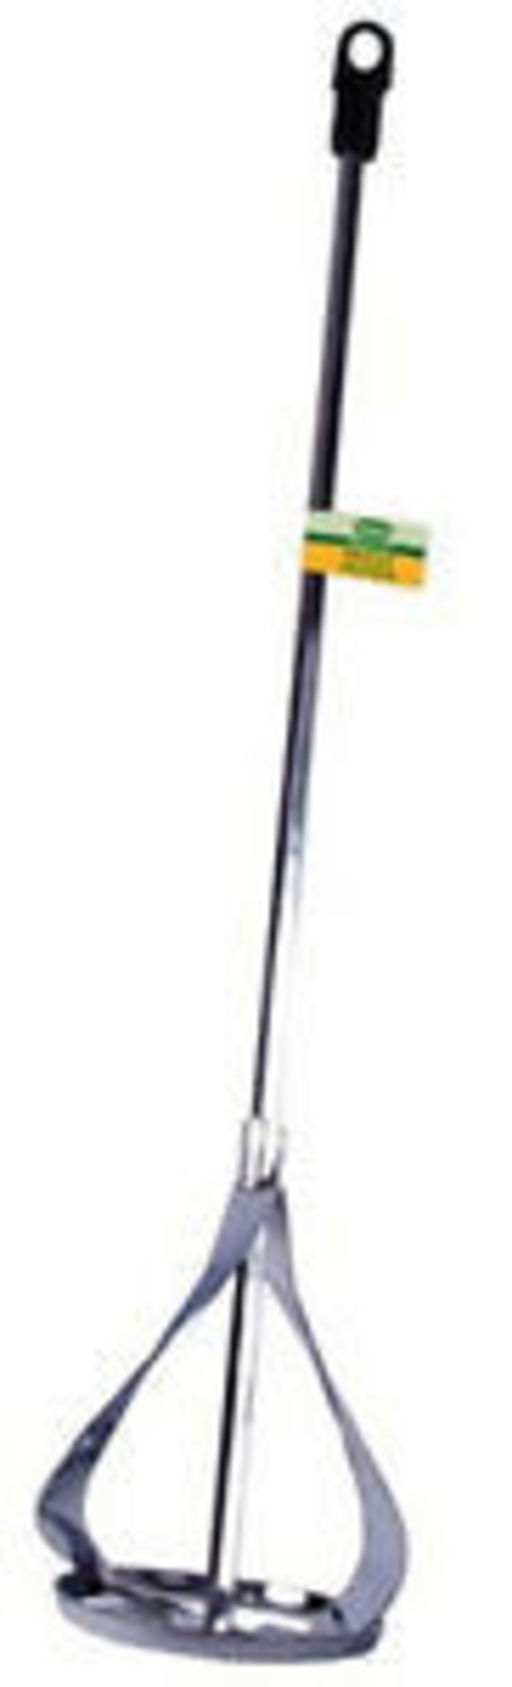 Drill Fit Stirrer, 24 inch Image 1